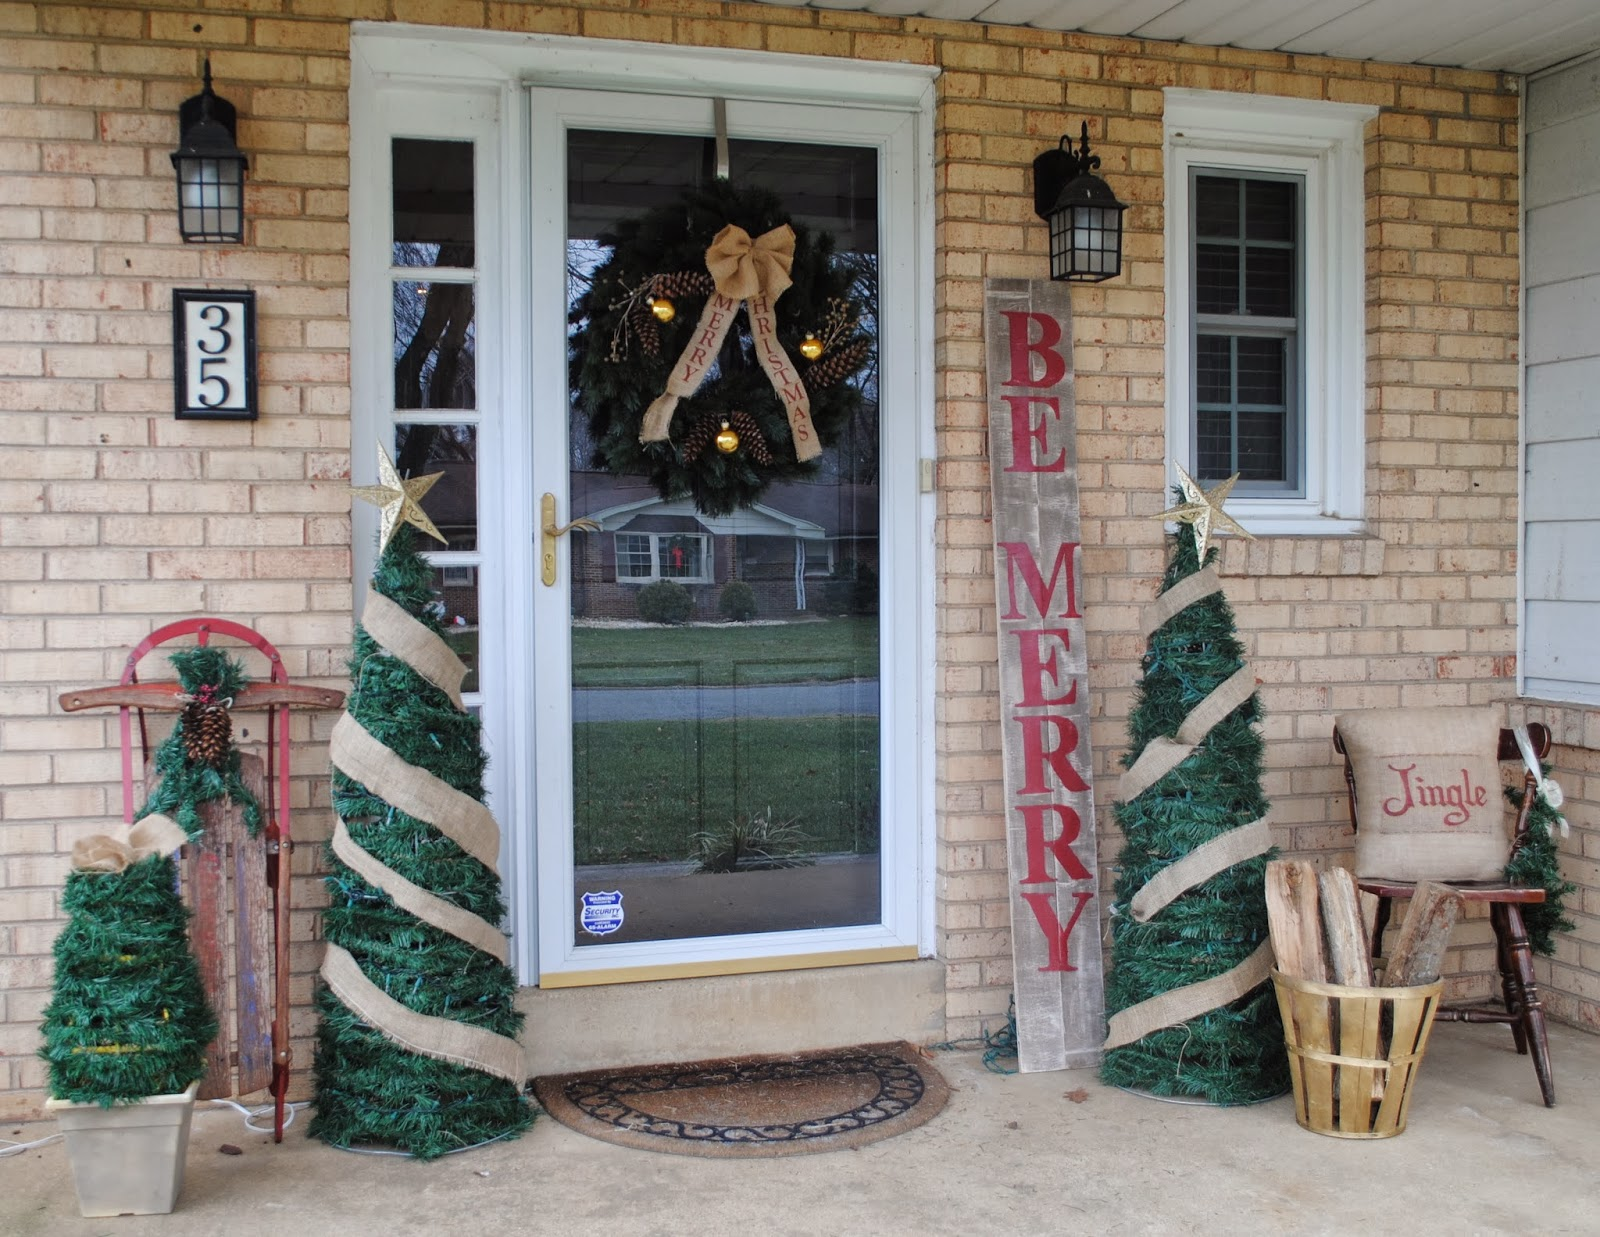 and that is how i decorated my christmas front porch for 5875